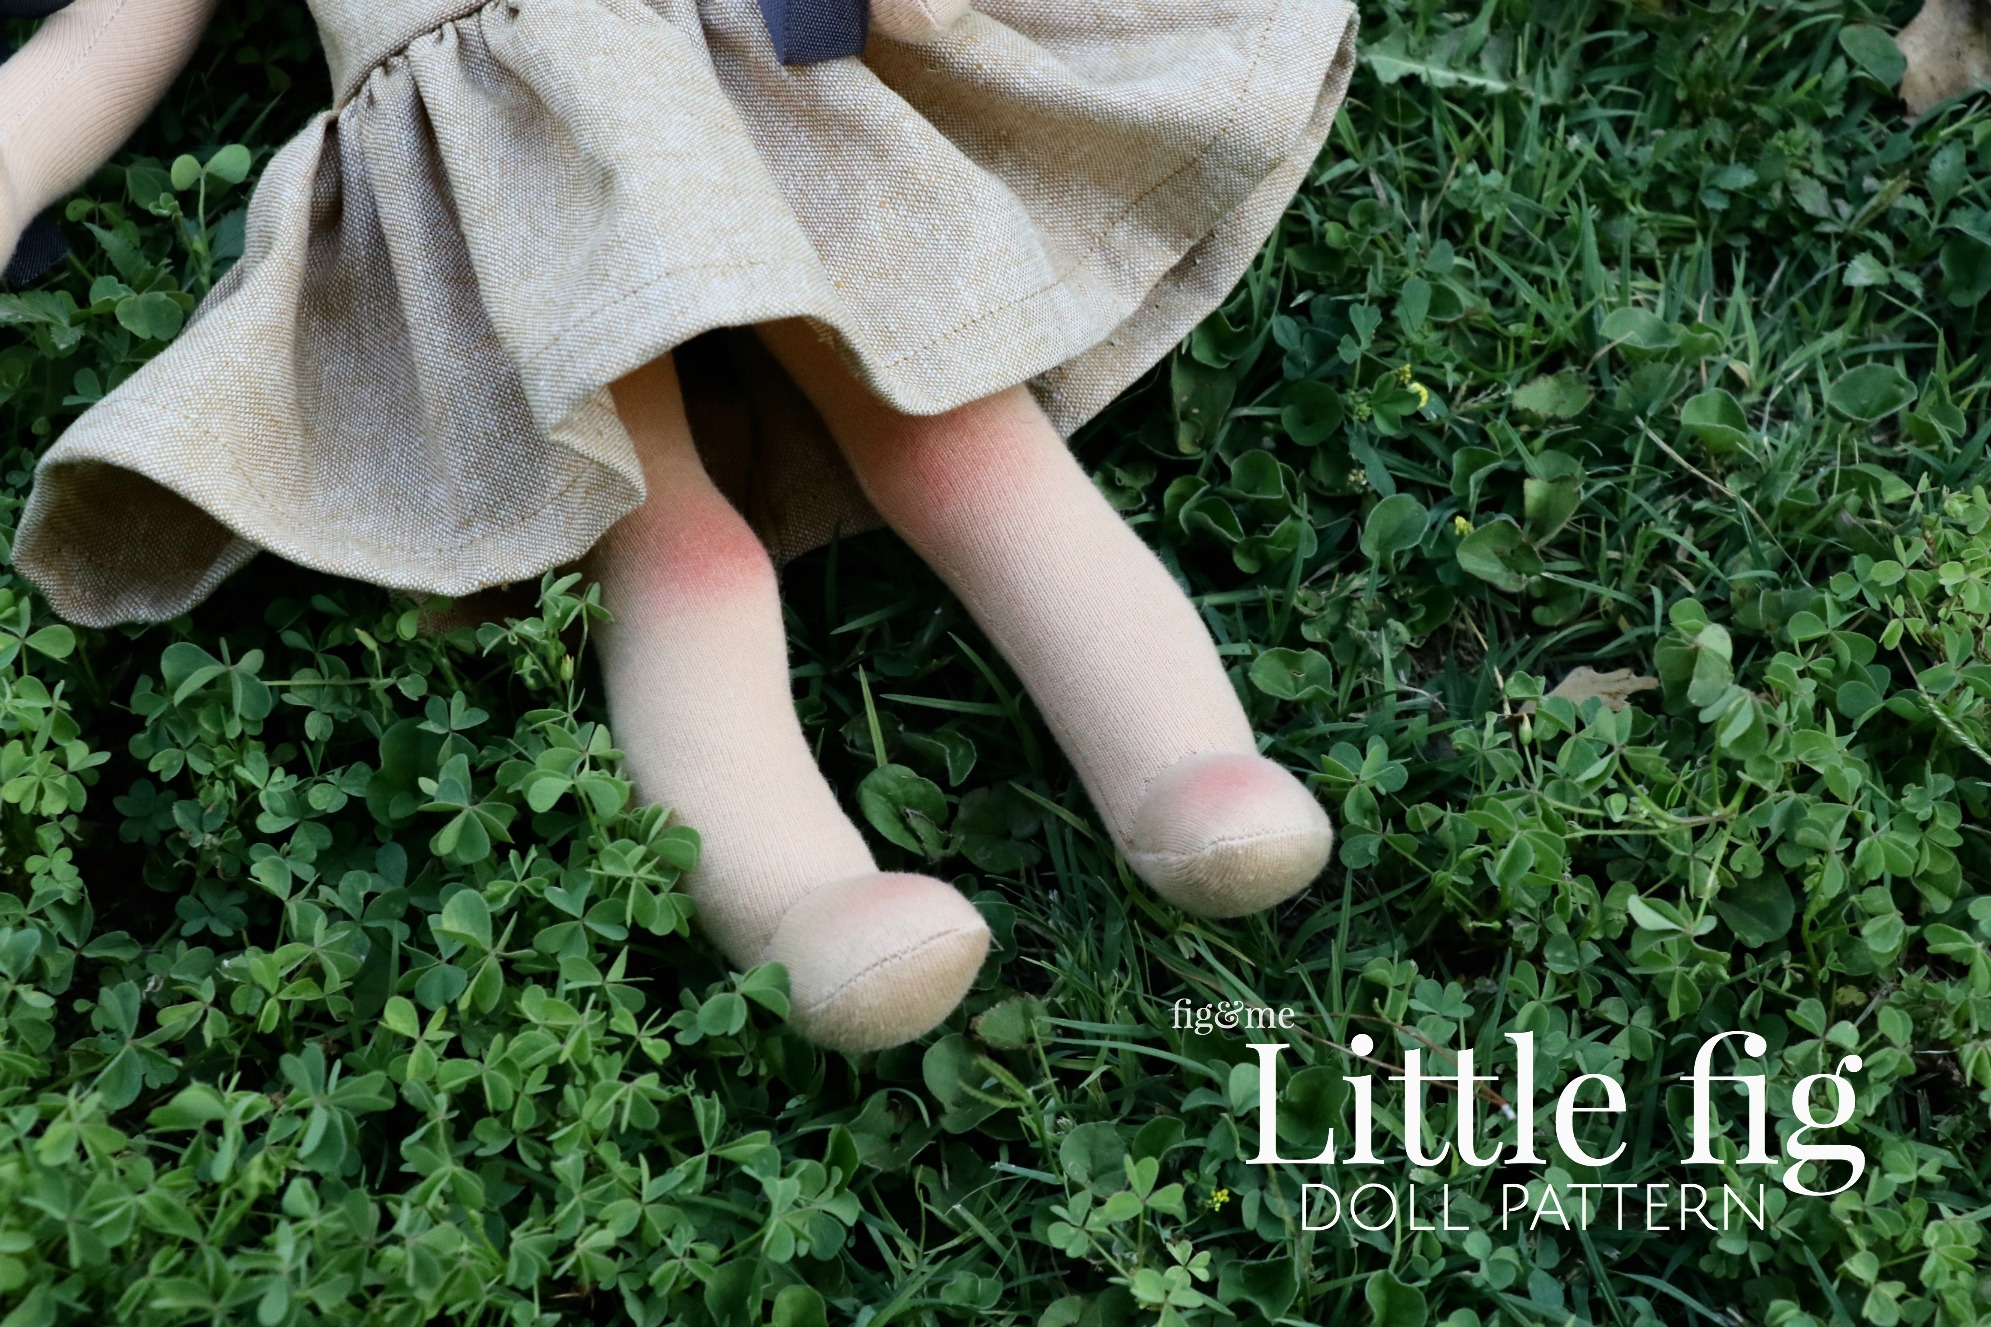 The Little Fig doll pattern is here. Make a little doll with cotton and stuffed with wool, waldorf style. via Fig and me.